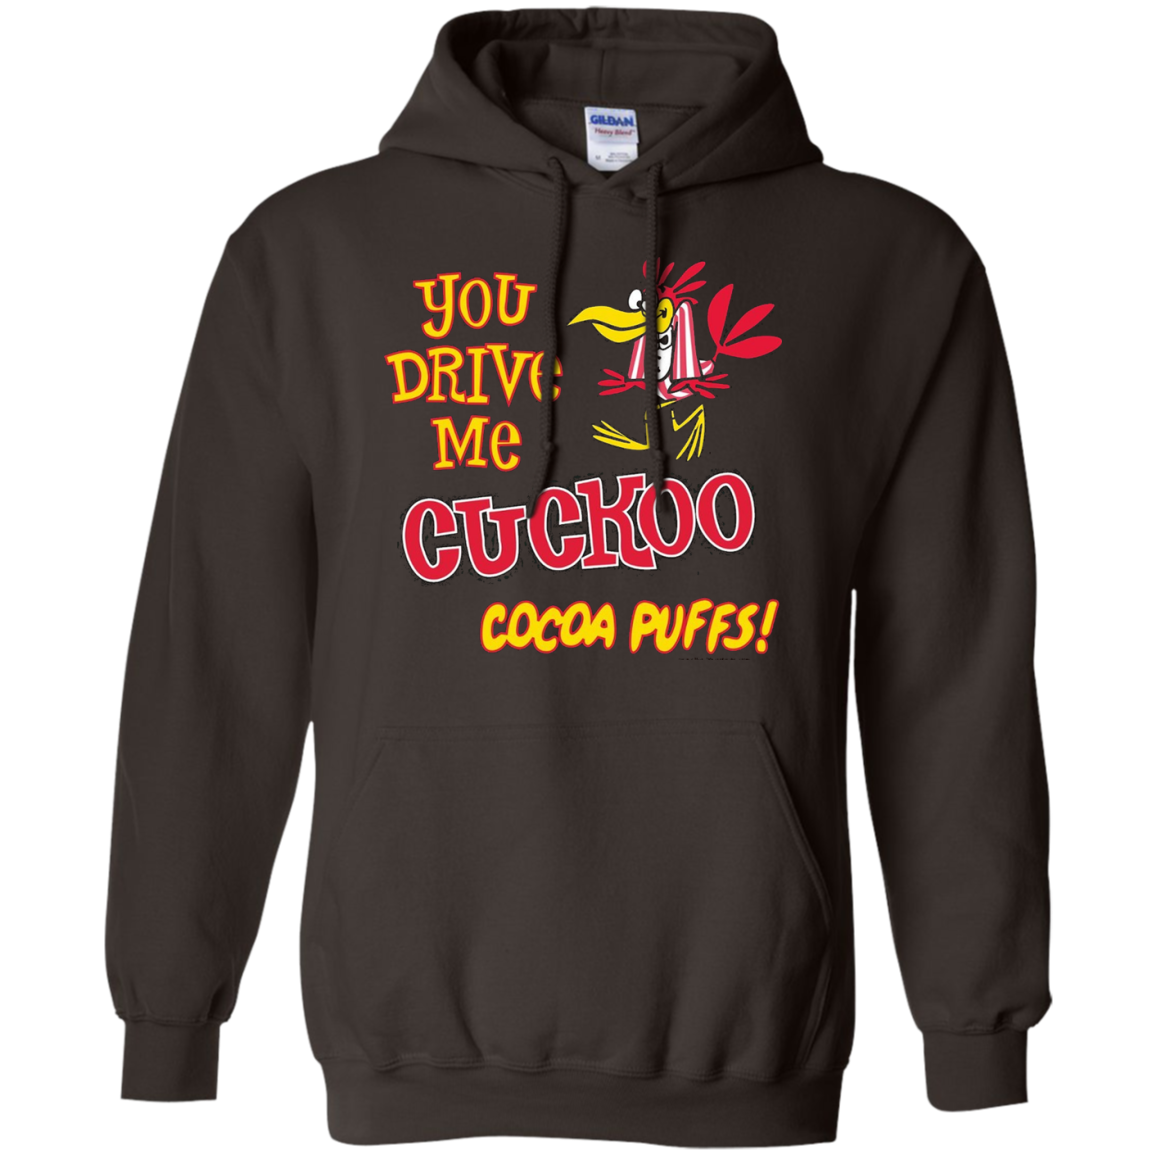 """You Drive Me Cuckoo for Cocoa Puffs!"" T-Shirt Soft Touch"